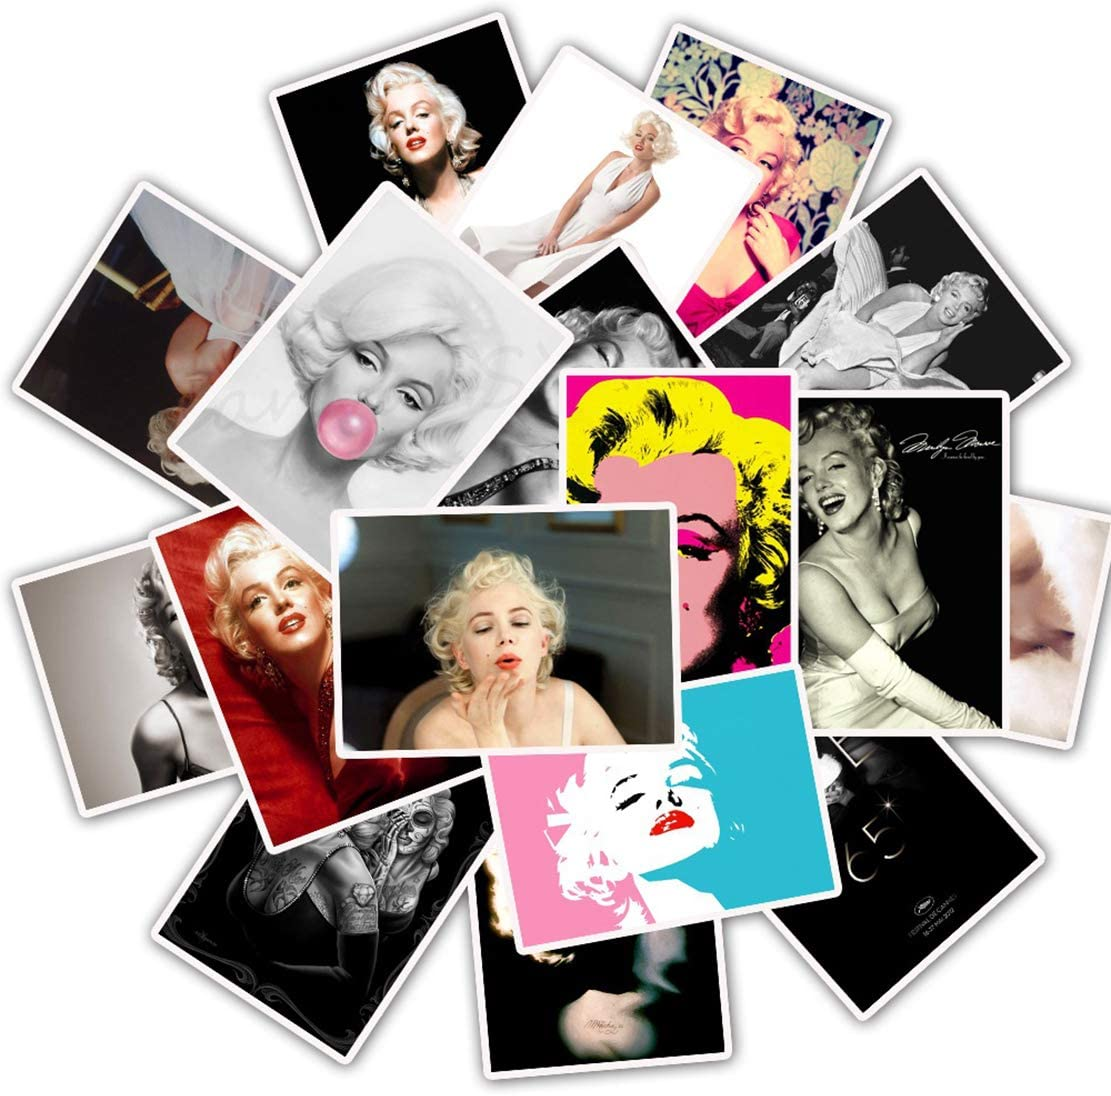 ARPA 25Pcs Idol Marilyn Monroe Stickers for Laptops Books Cars Motorcycles Skateboards Bicycles Suitcases Skis Luggage Cup Hydro Flasks etc DJHSL